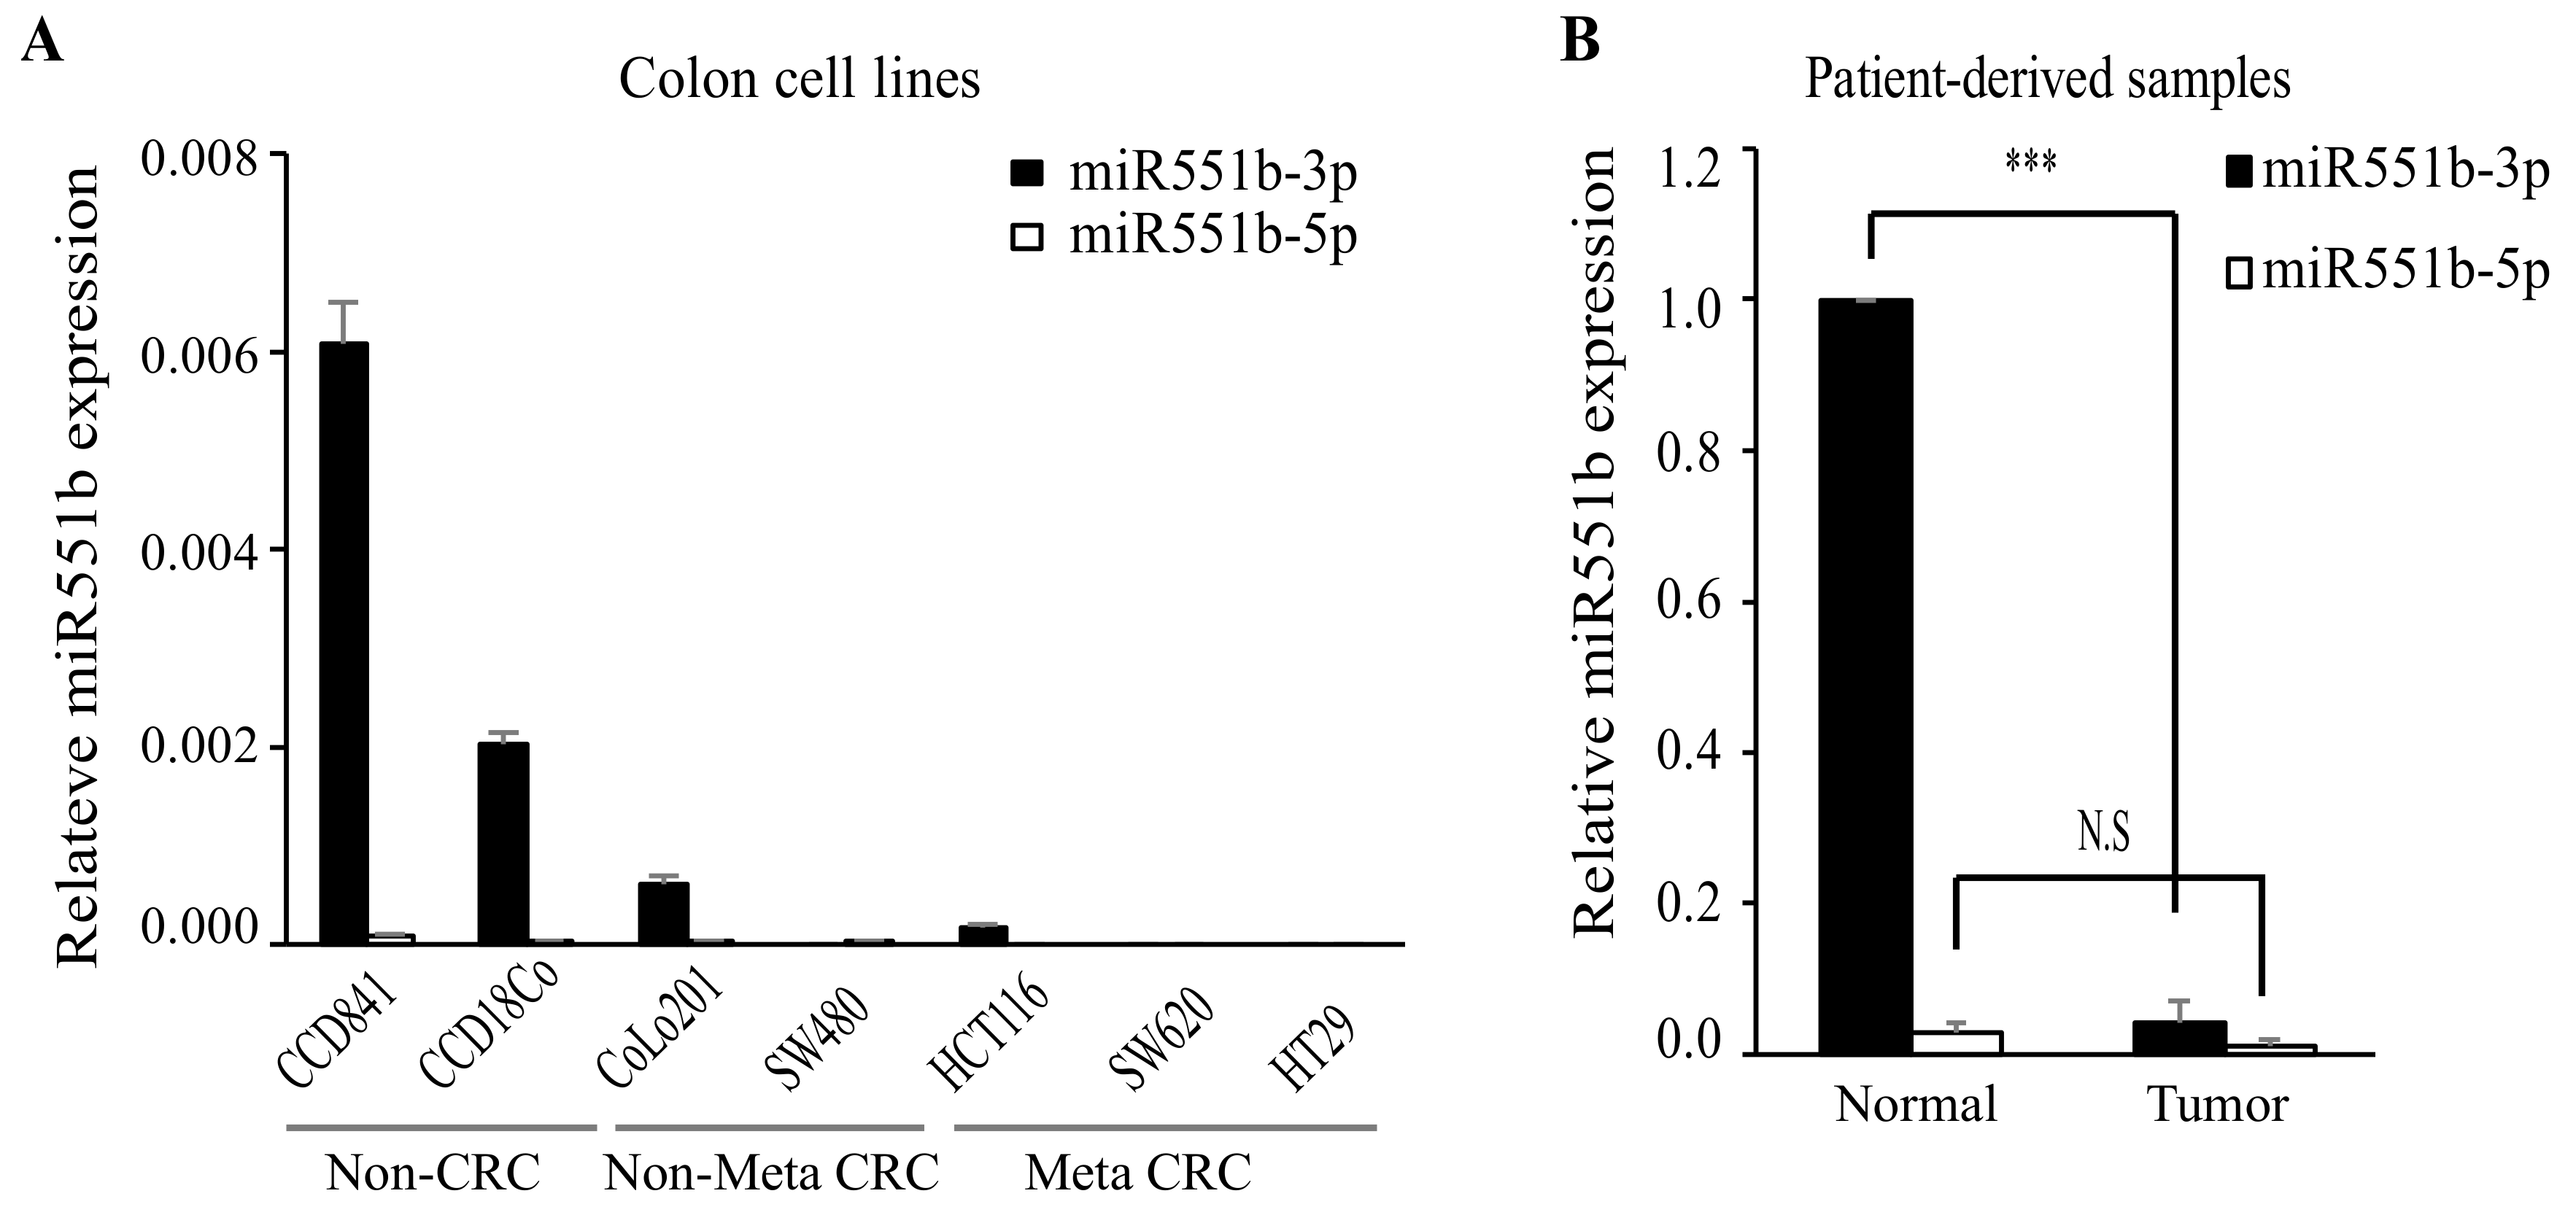 Cancers | Free Full-Text | miR551b Regulates Colorectal Cancer